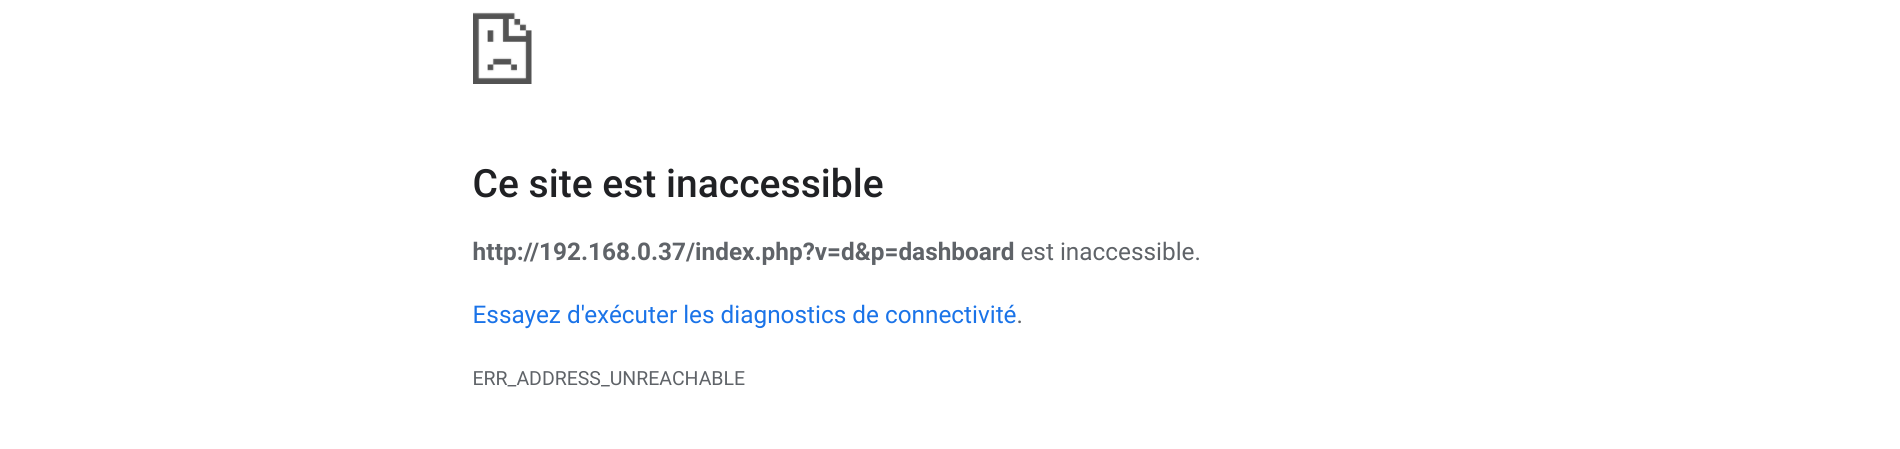 jeedom inaccessible